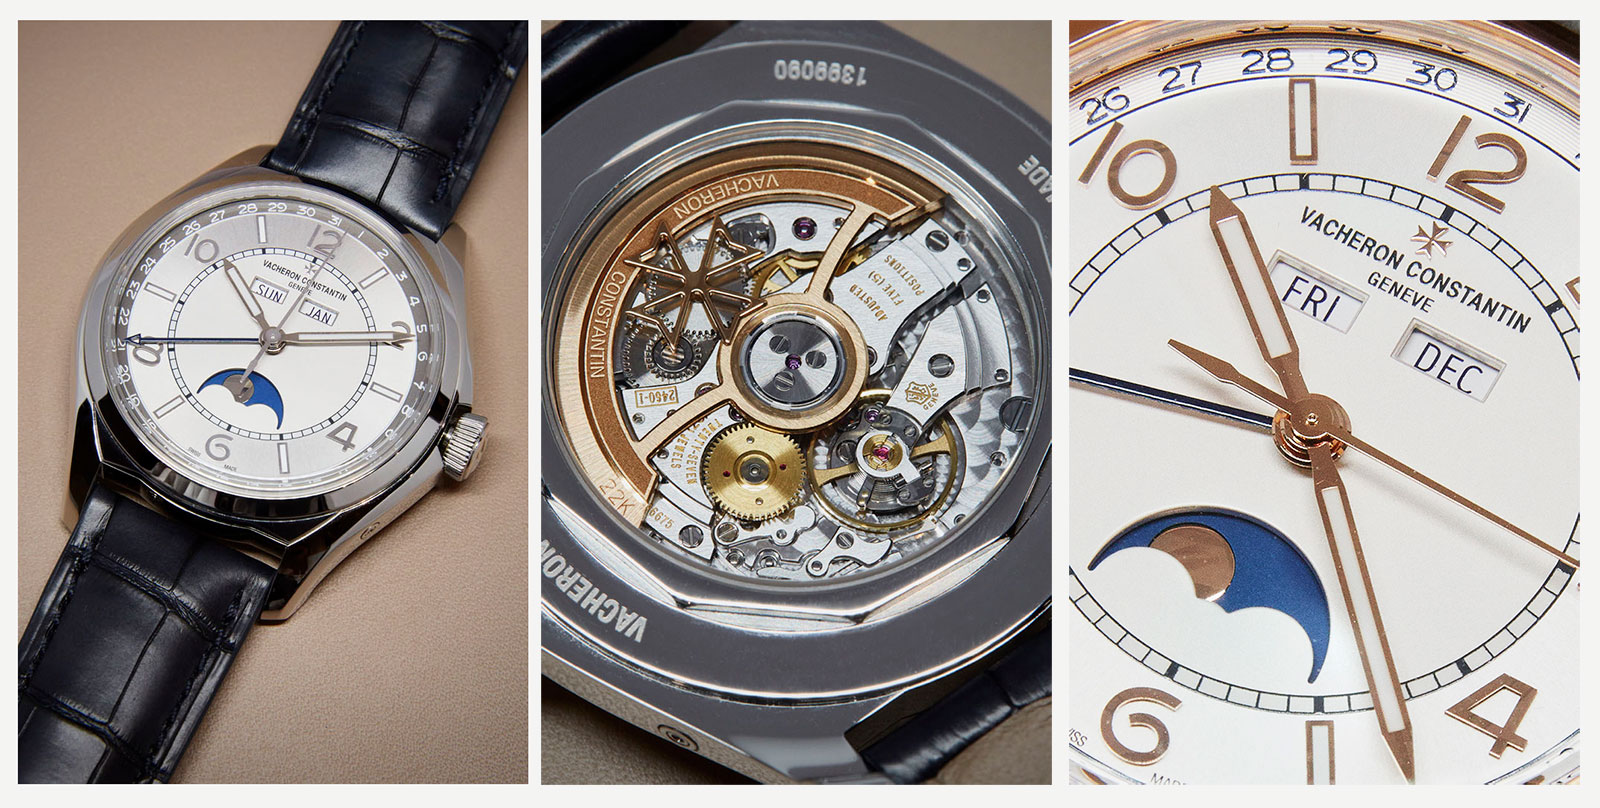 Vacheron Fiftysix watches